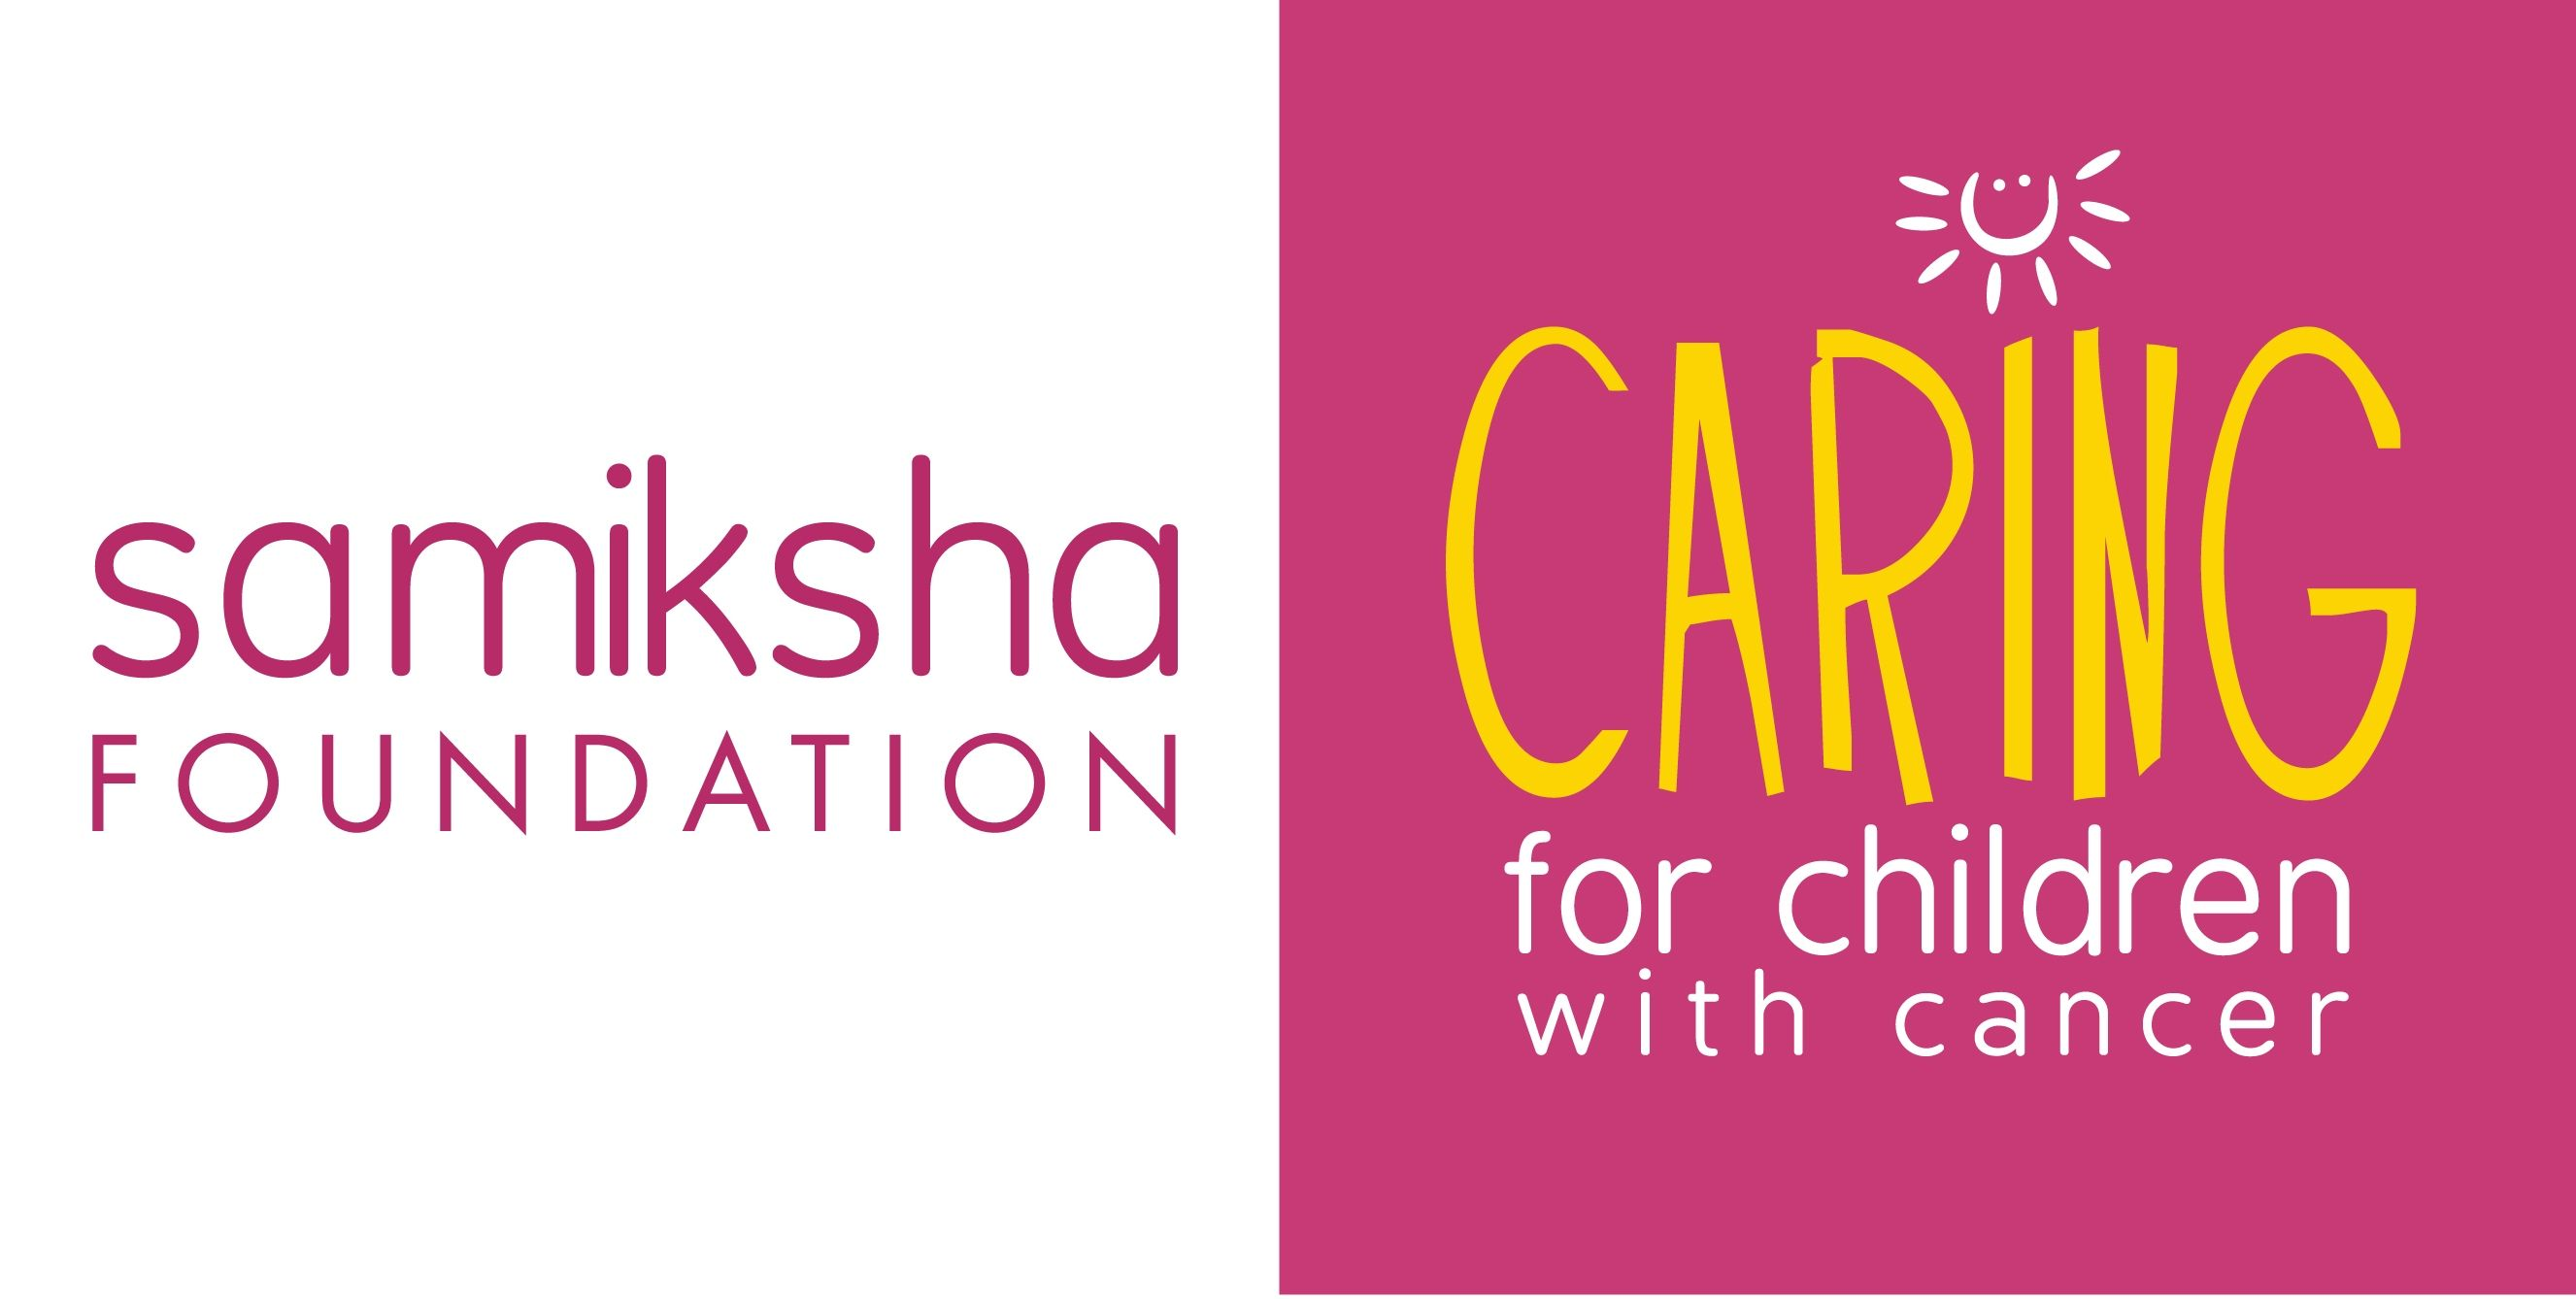 Samiksha Foundation - Caring for Children with Cancer Trust